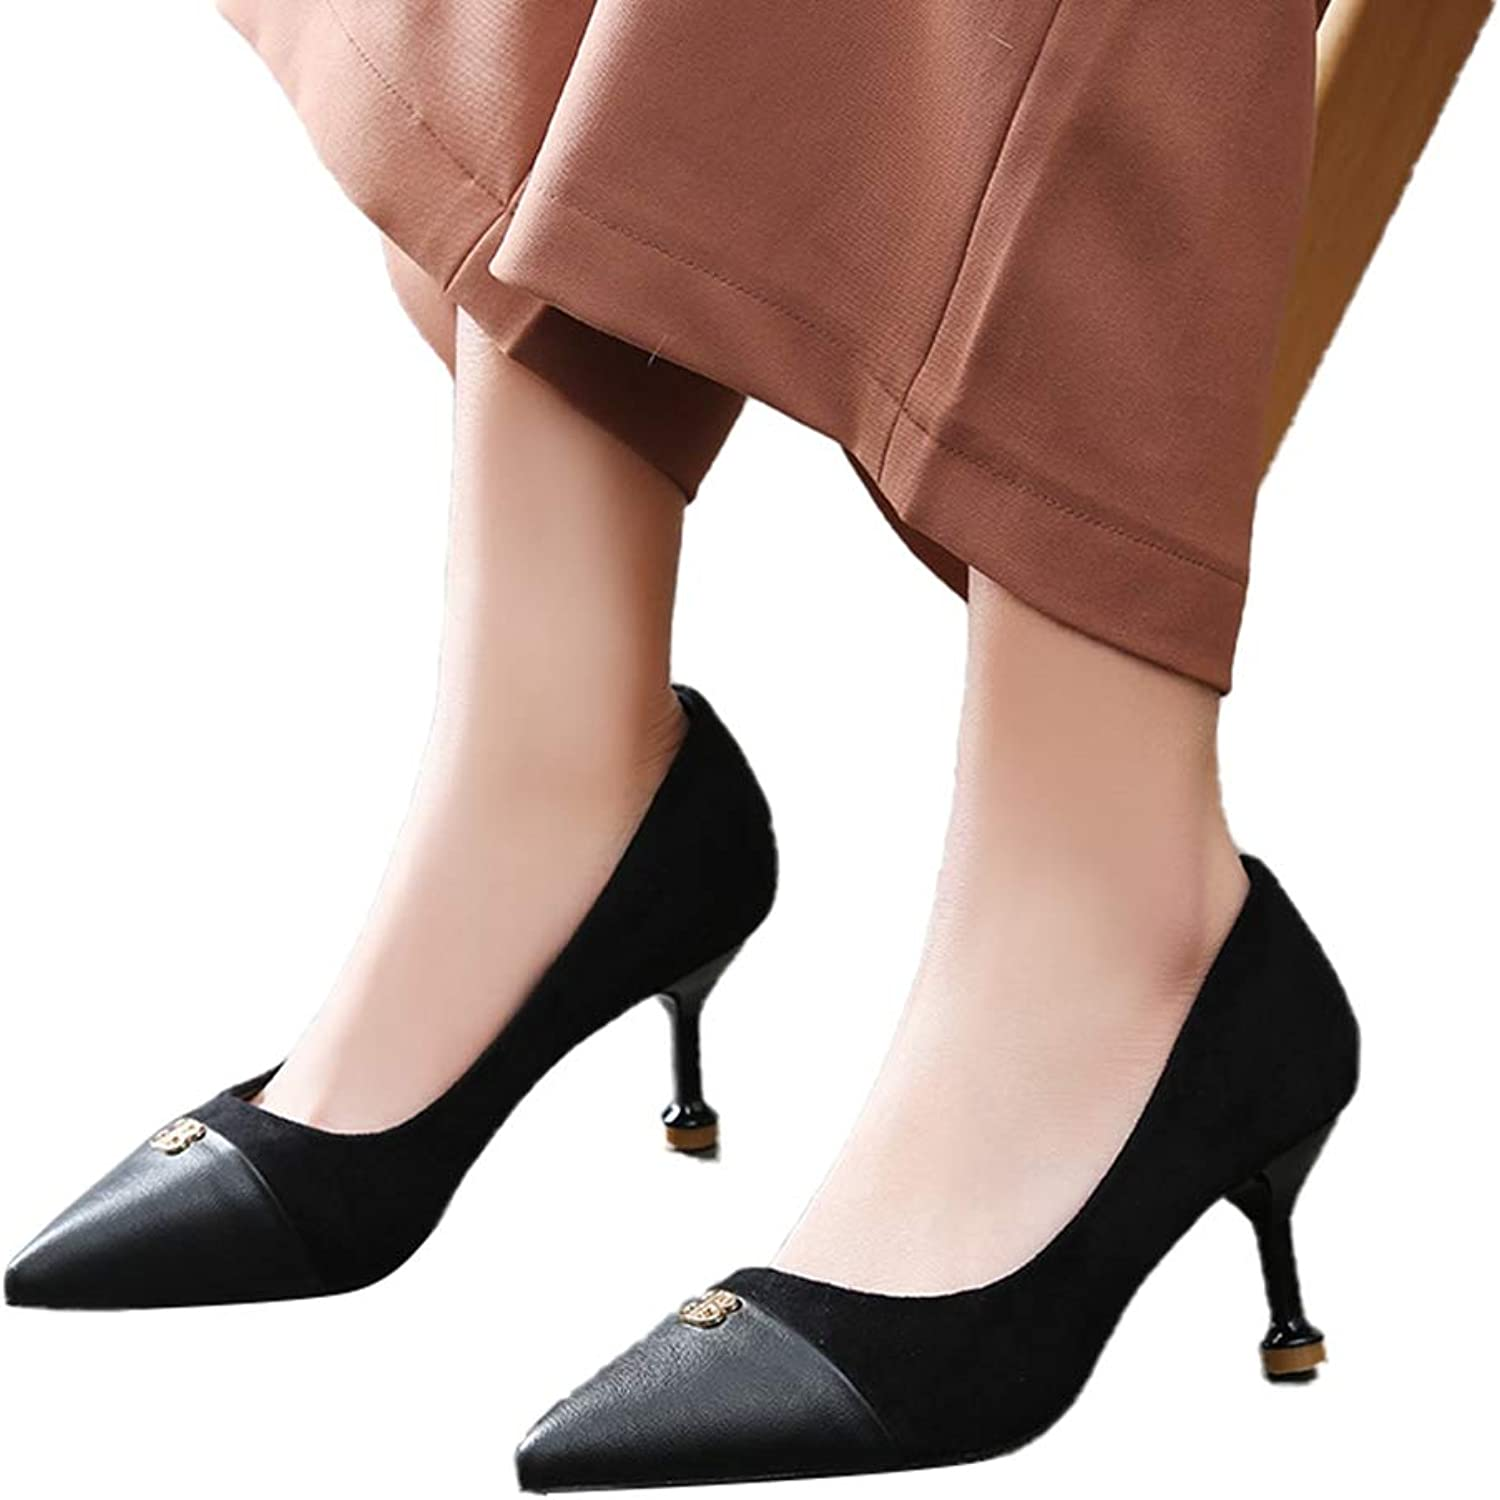 Women's Pumps,Spring Casual Leopard Pattern Comfortable Slip-on Party shoes